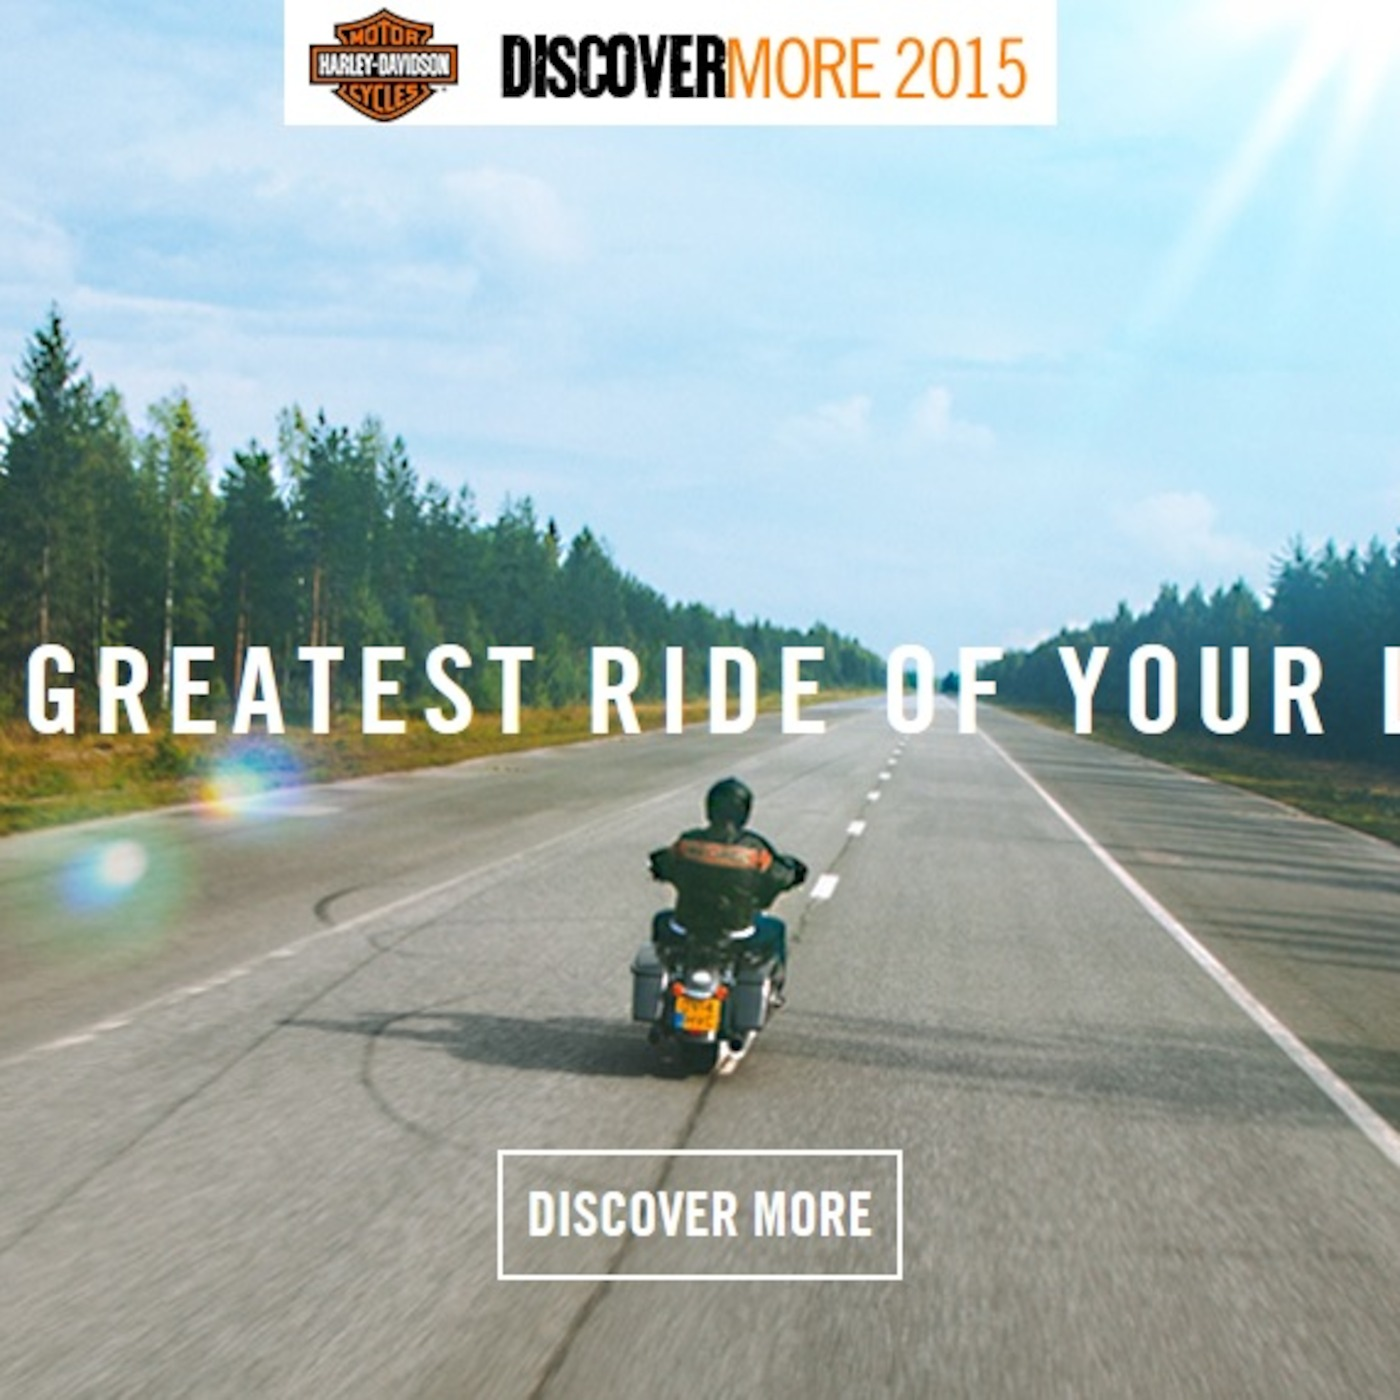 Discover More 2015 - Harley Davidson Rider Wanted